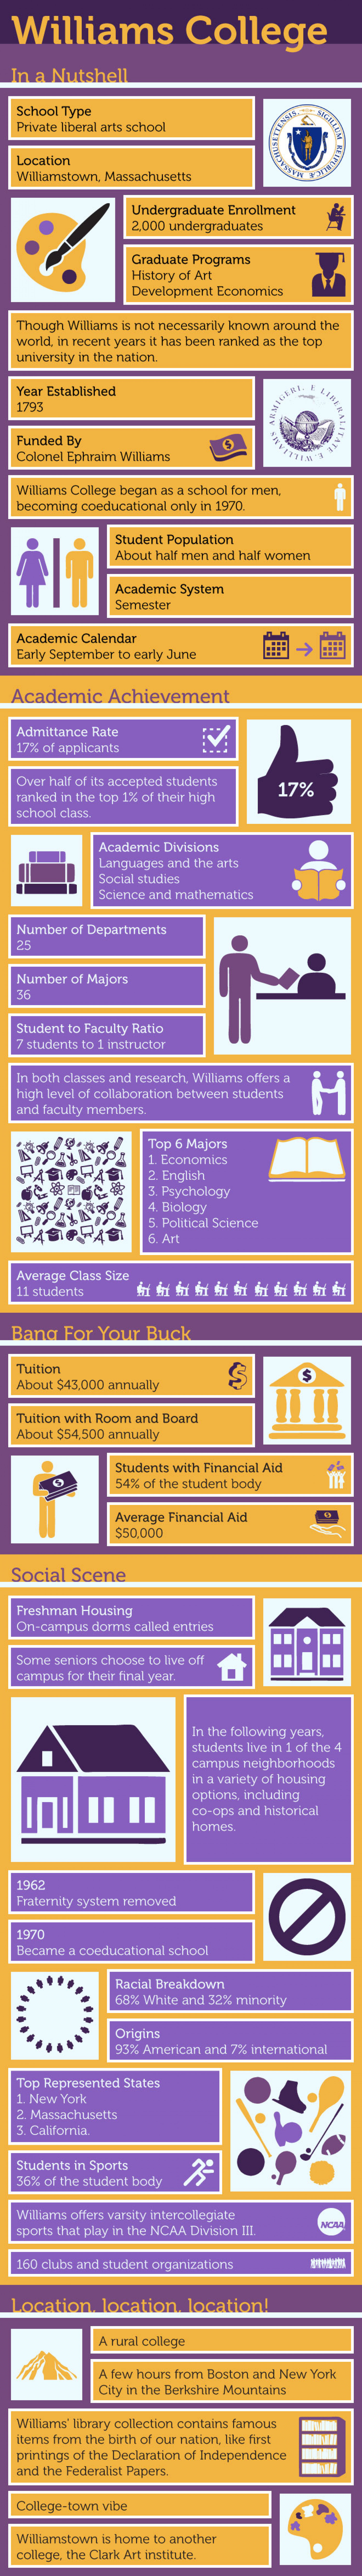 Williams College Infographic Infographic